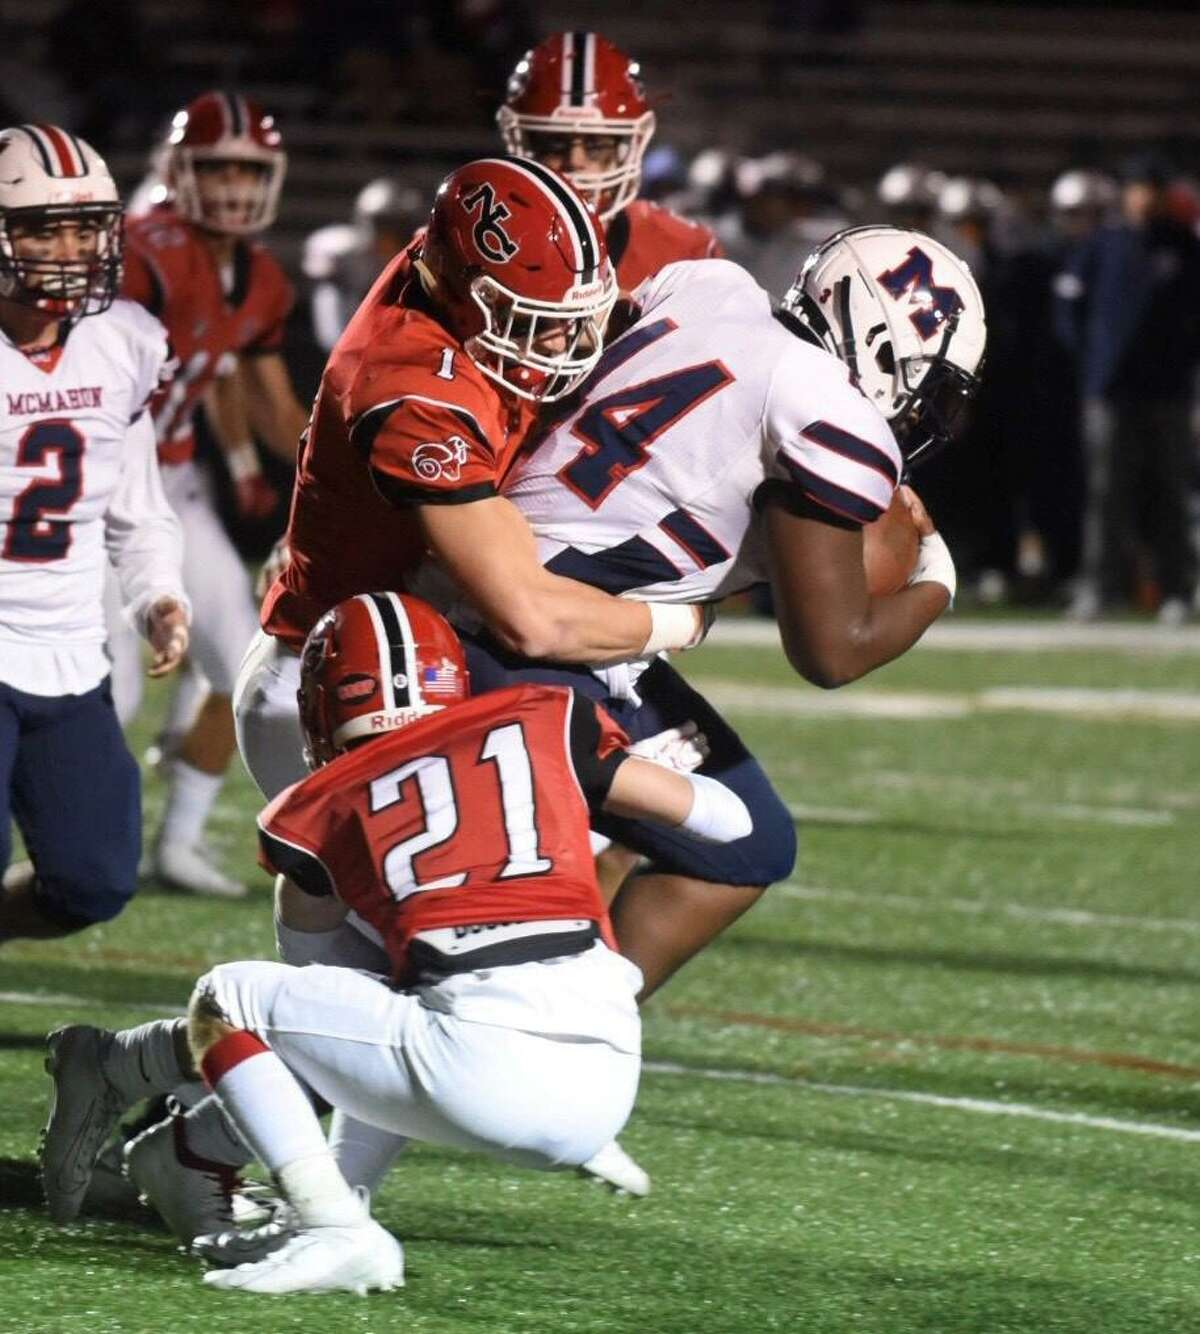 Brien McMahon's Jermayne Daniel (44) is wrapped up by New Canaan's Chris Carratu (1) and Dean Ciancio (21) during a football game at Dunning Field in New Canaan on November 1.